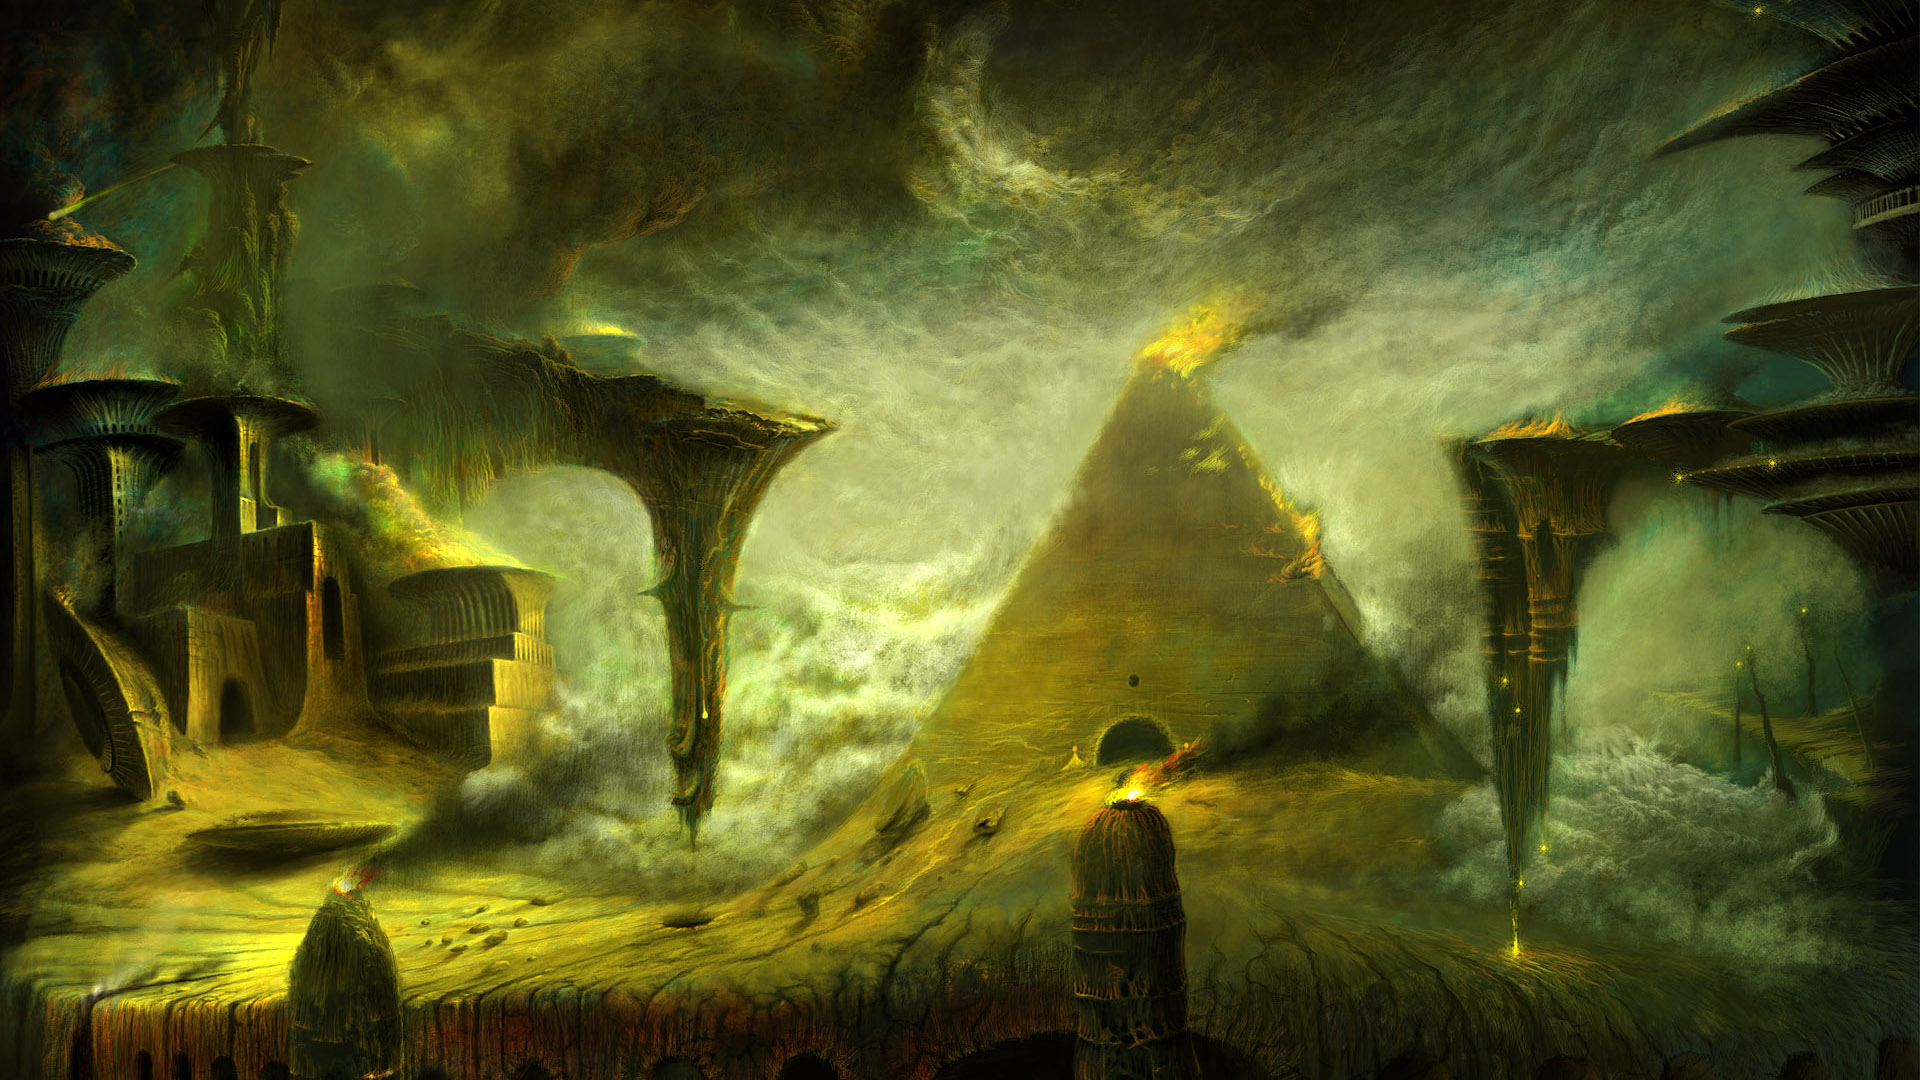 40 Hd Fantasy Ipad Wallpapers: Awesome Wallpapers